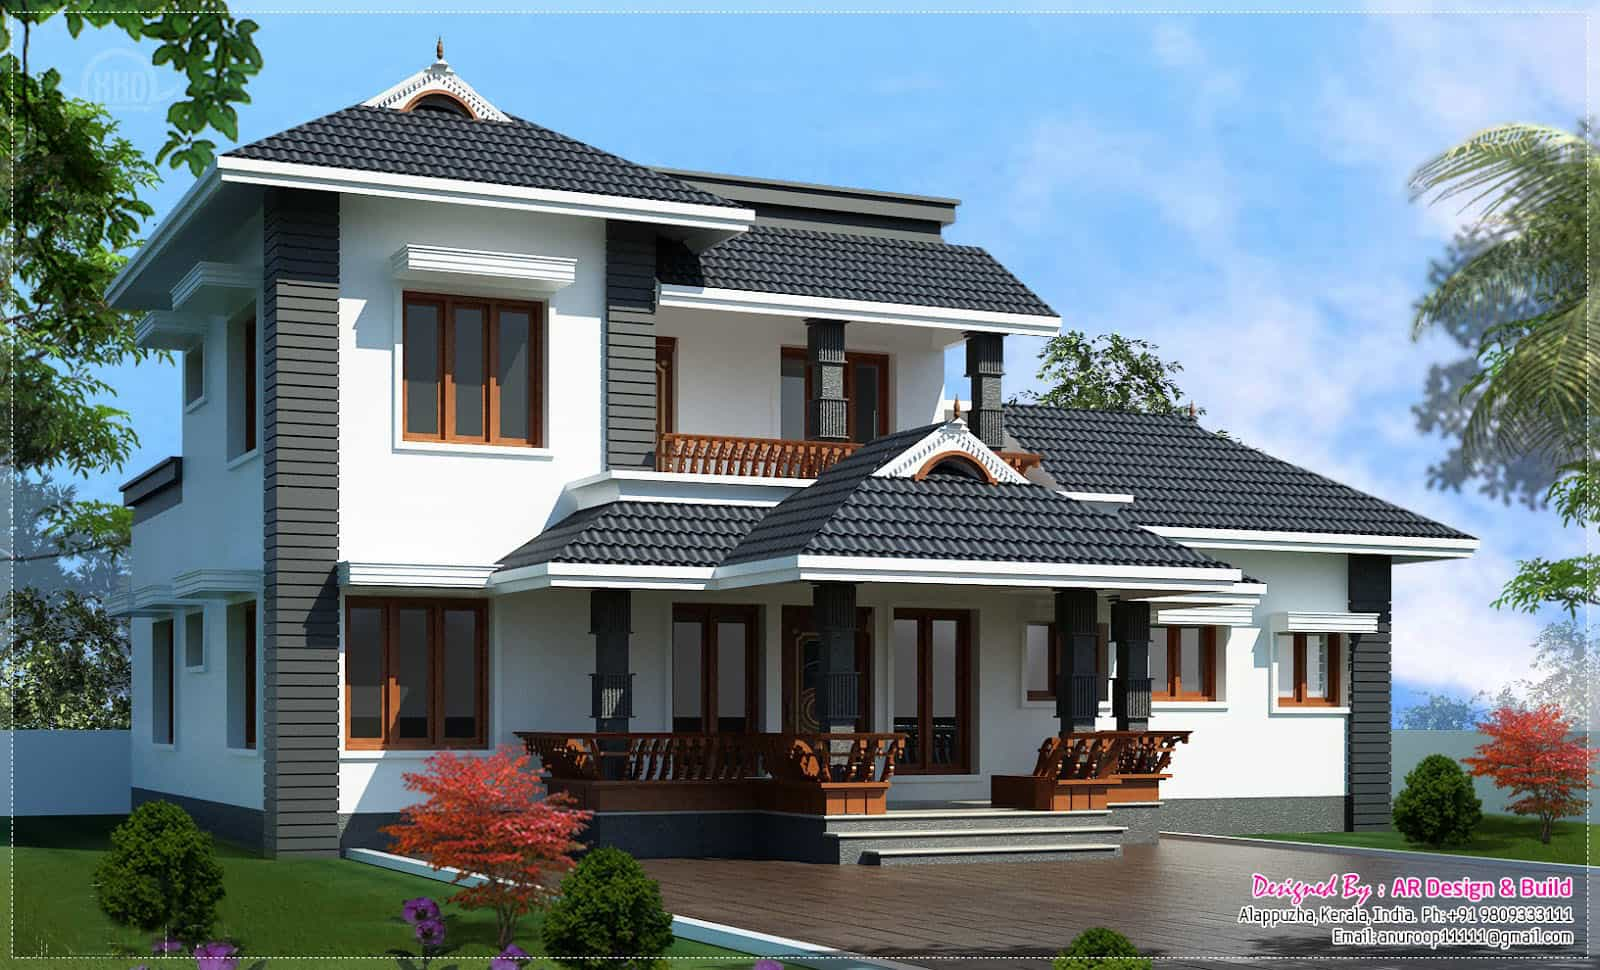 Low budget kerala homes keralahouseplanner for Home designs kerala architects